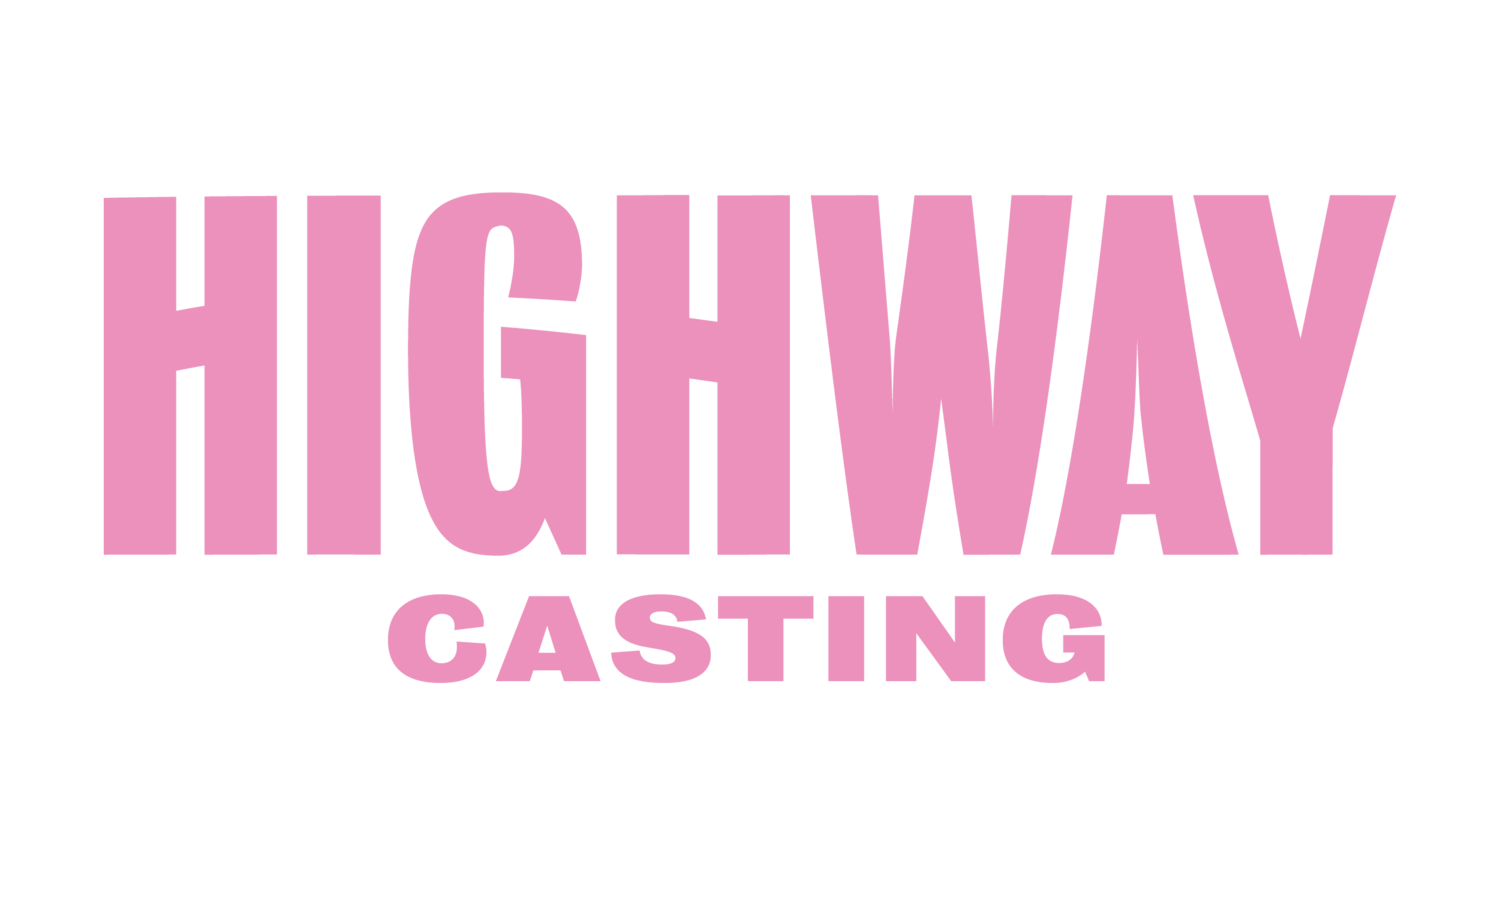 HIGHWAY CASTING FOR FILM & TV